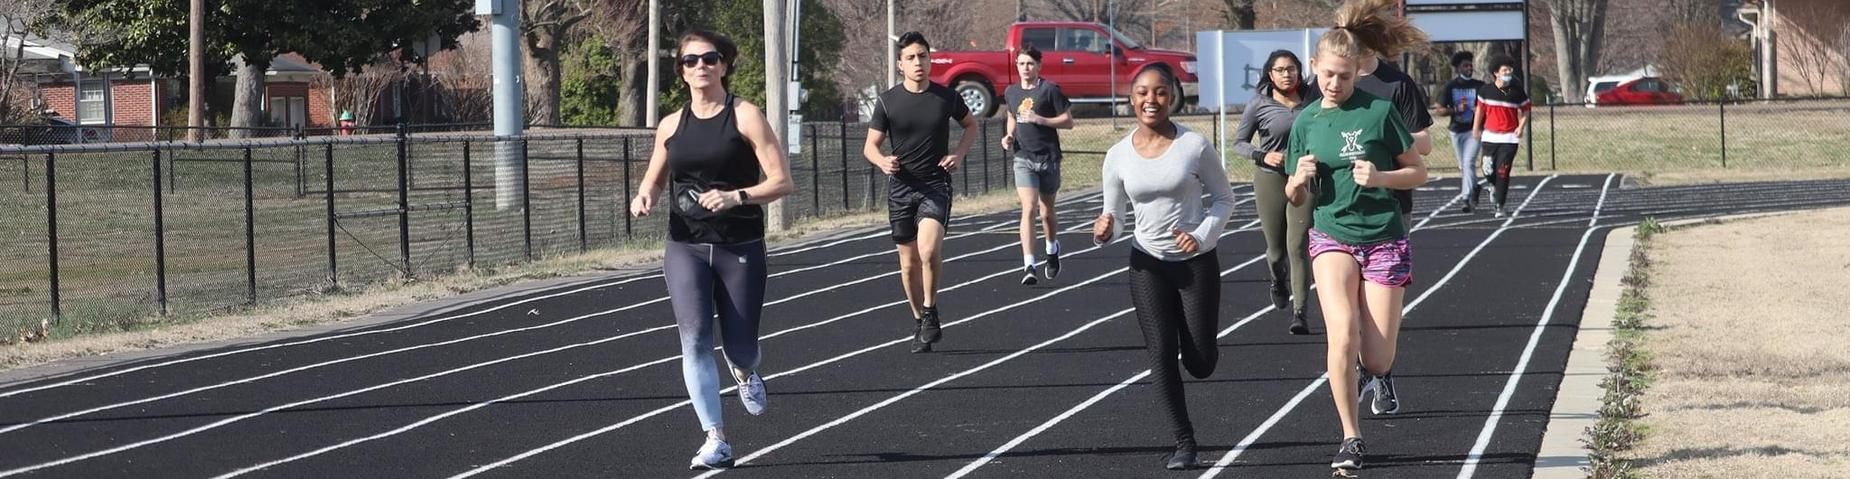 MHS Track Team getting ready for their season to start in a few weeks.